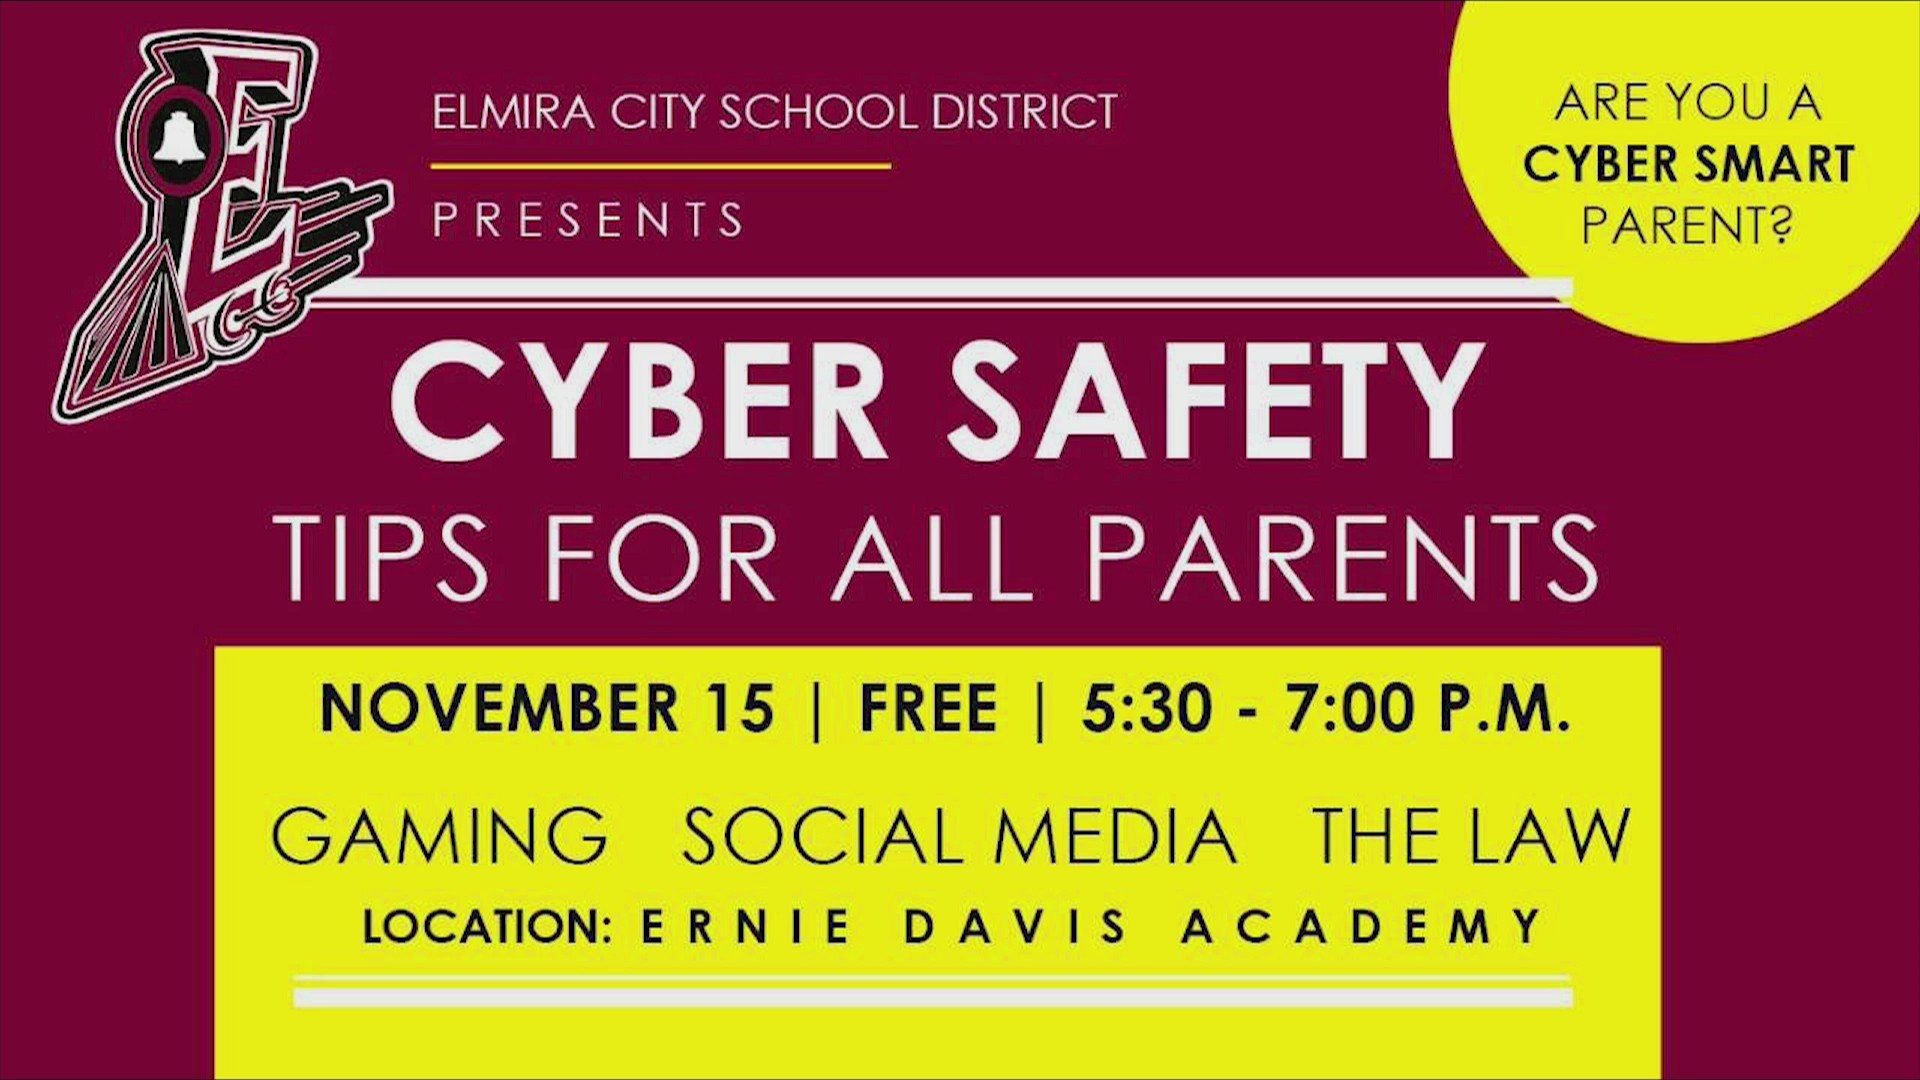 Cybersafety tips for parents